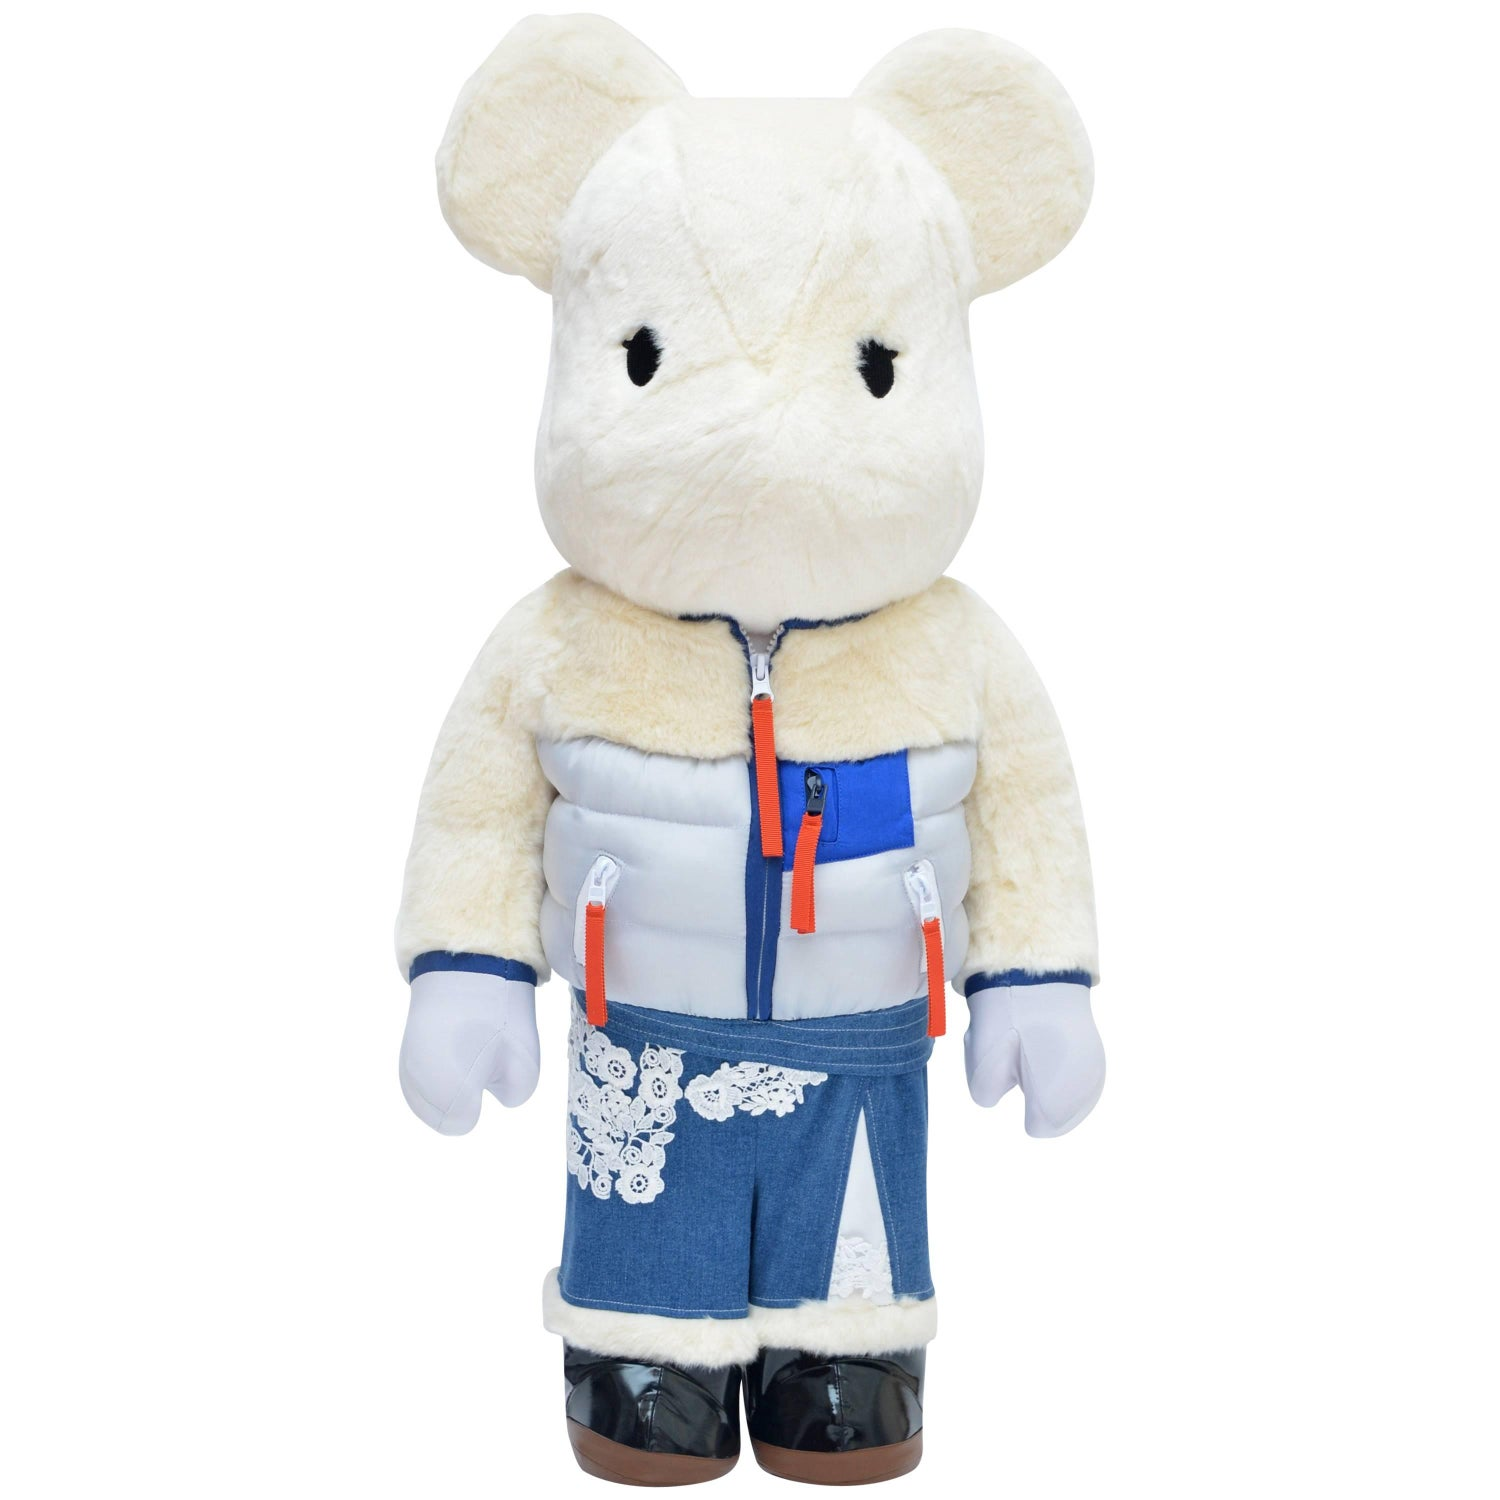 f06ba386da Sacai X Medicom Bearbrick 1000% Colette Paris New For Collectors Or Decor